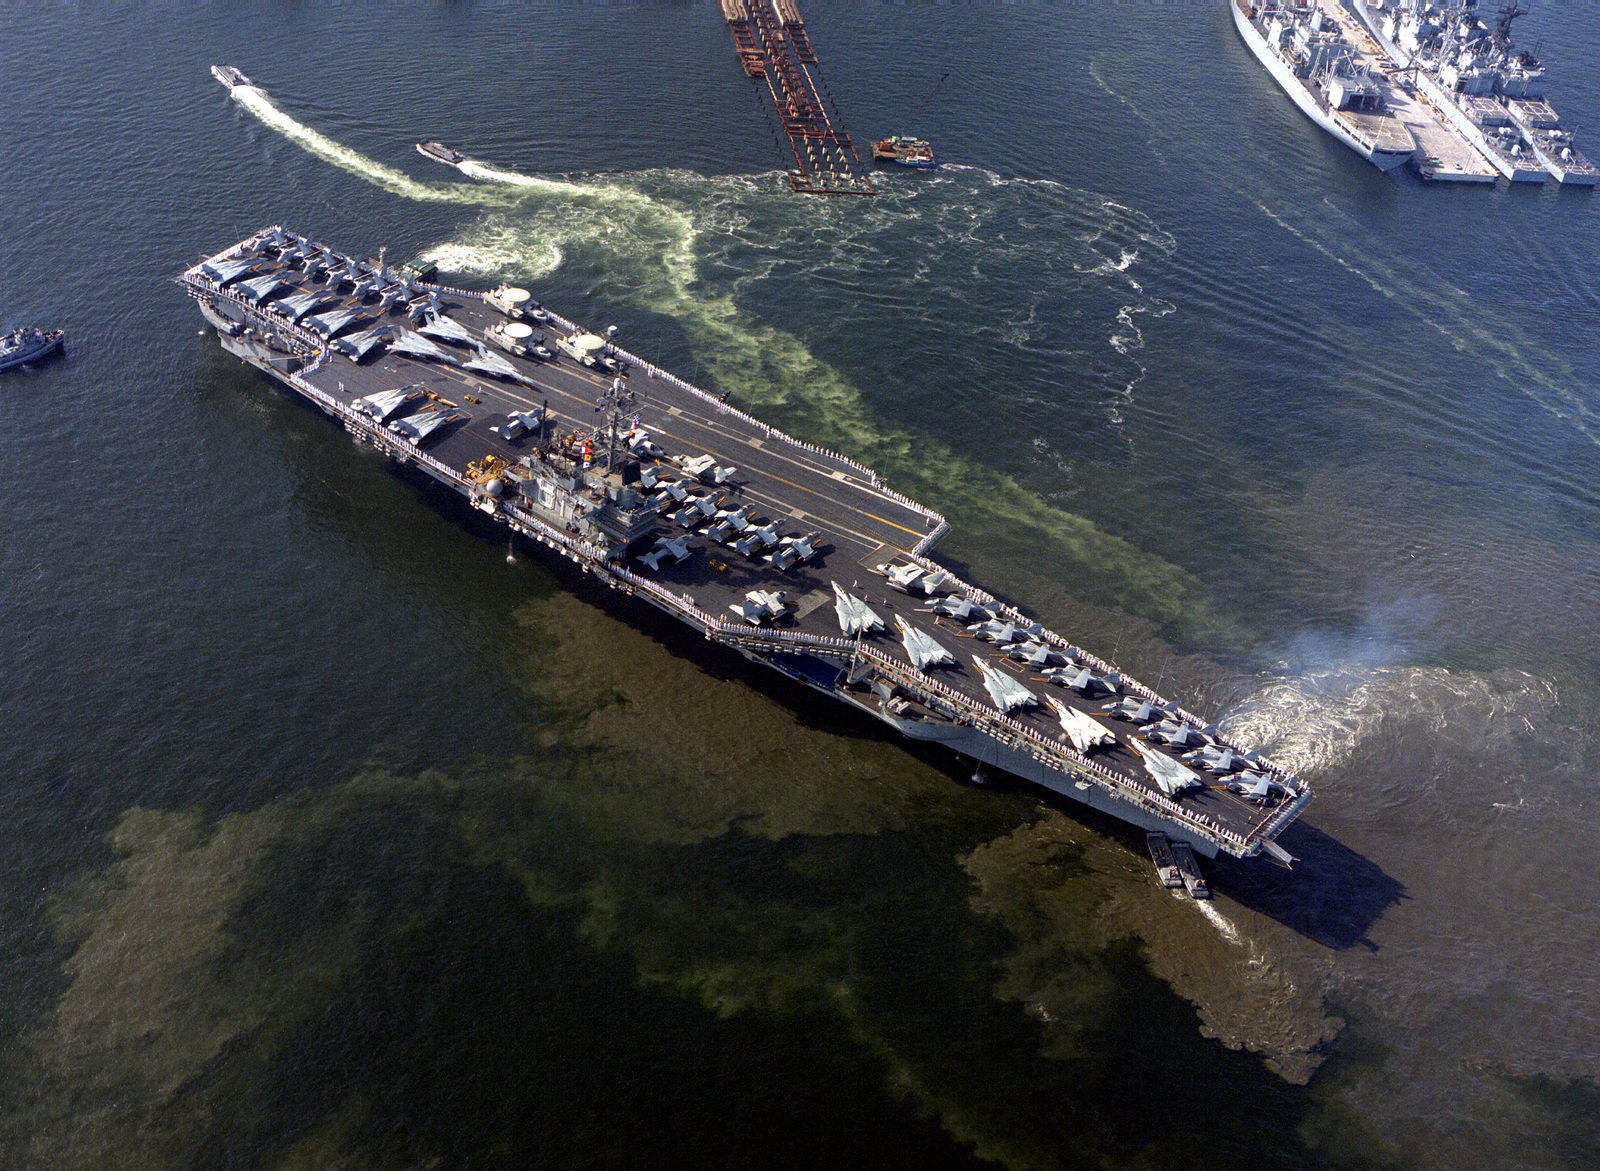 Large harbor tugs maneuver the aircraft carrier USS RANGER